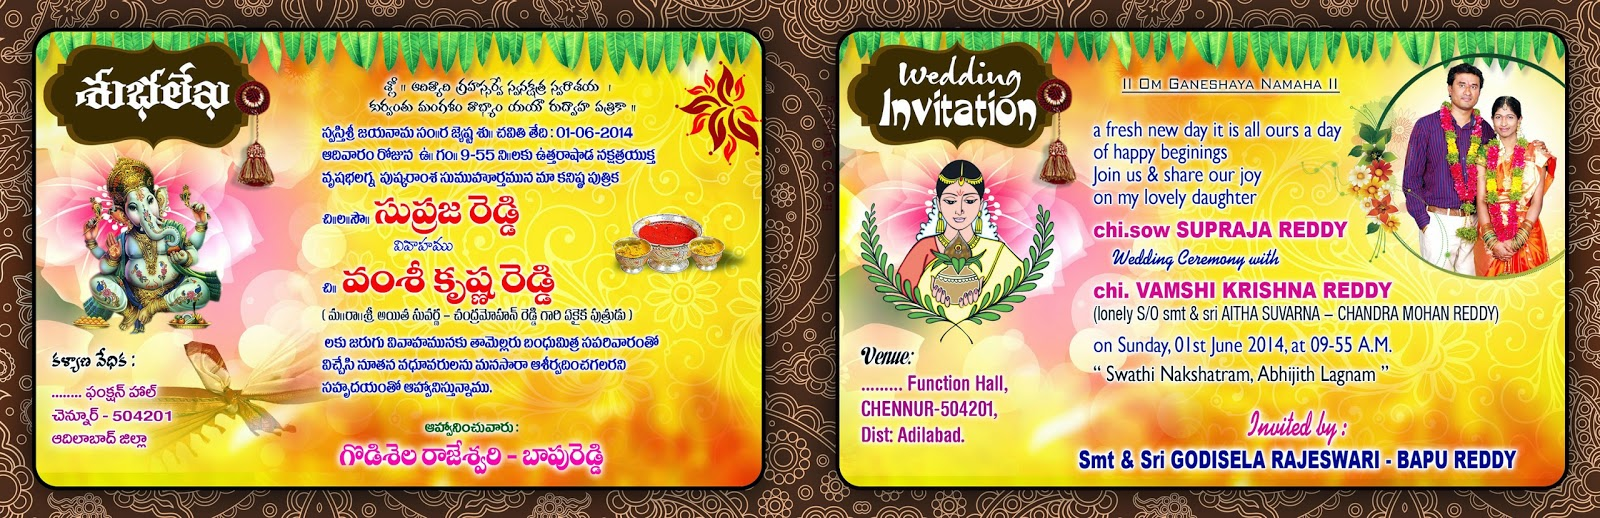 indian-wedding-invitation-card-design-psd-template